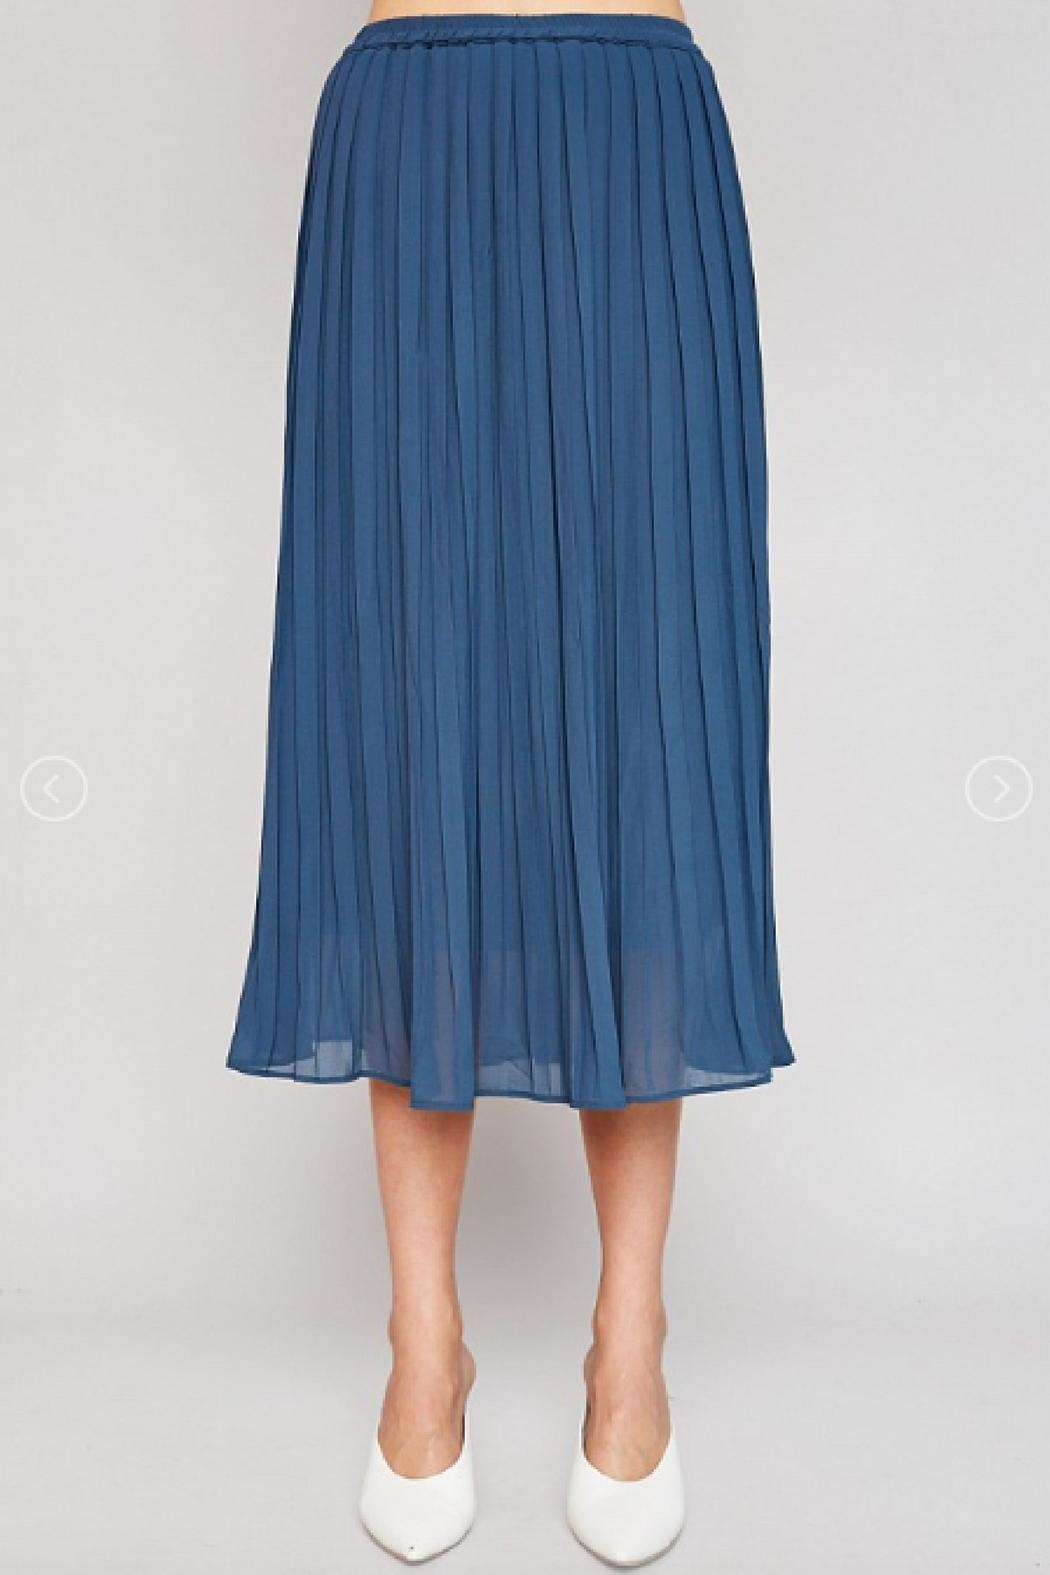 Hayden Los Angeles Pleated Midi Skirt - Front Cropped Image